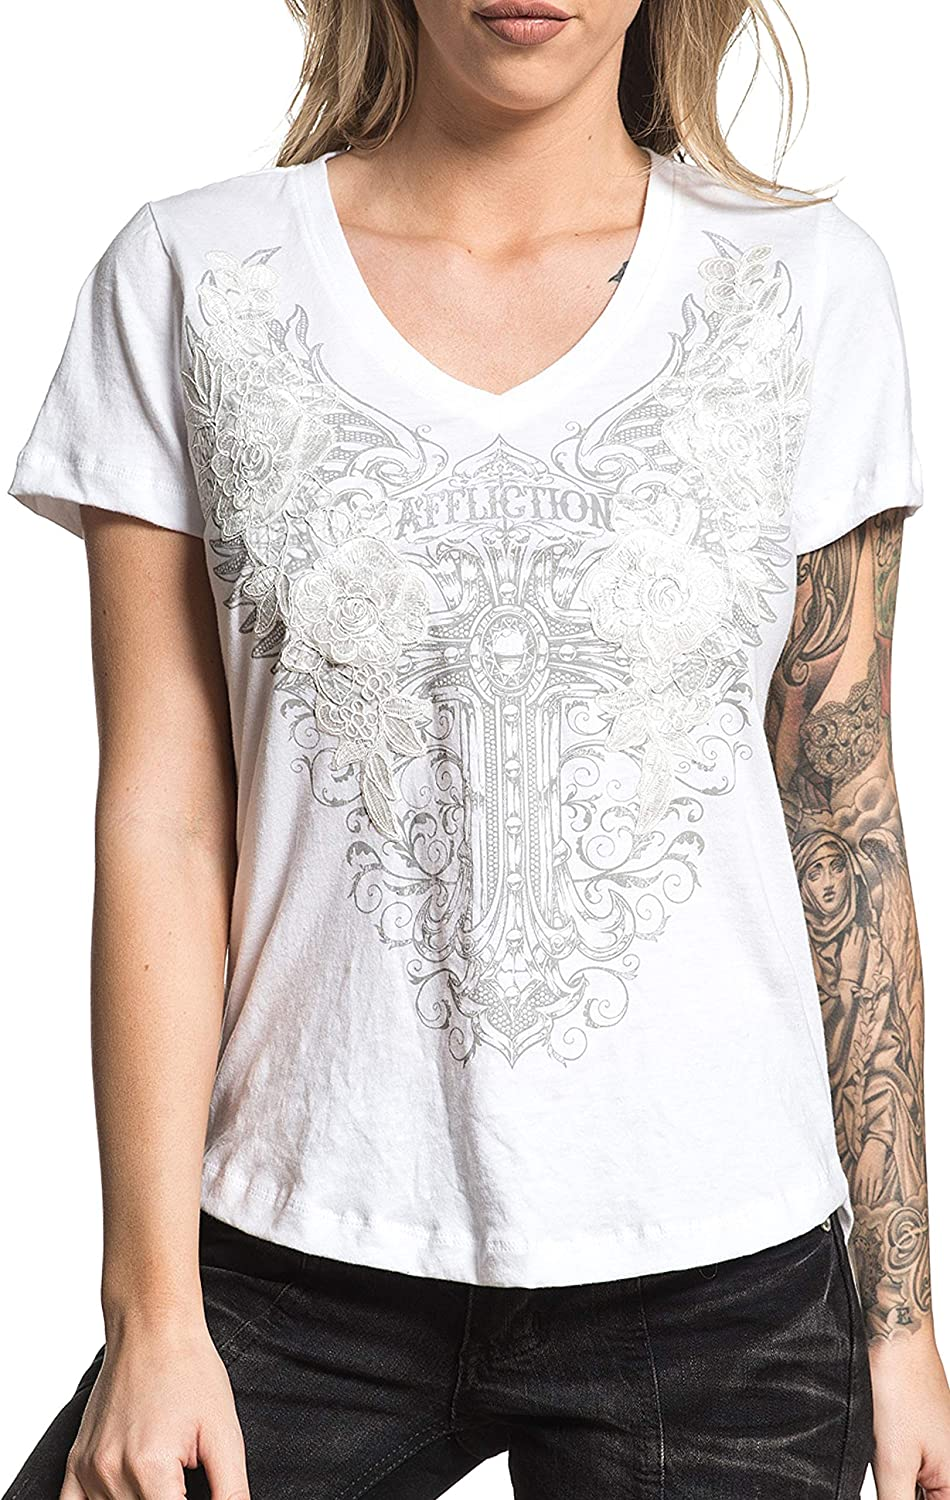 Affliction Live Lorelei Women`s Short Sleeve VNeck Embroidered Fashion Graphic Tshirt Top